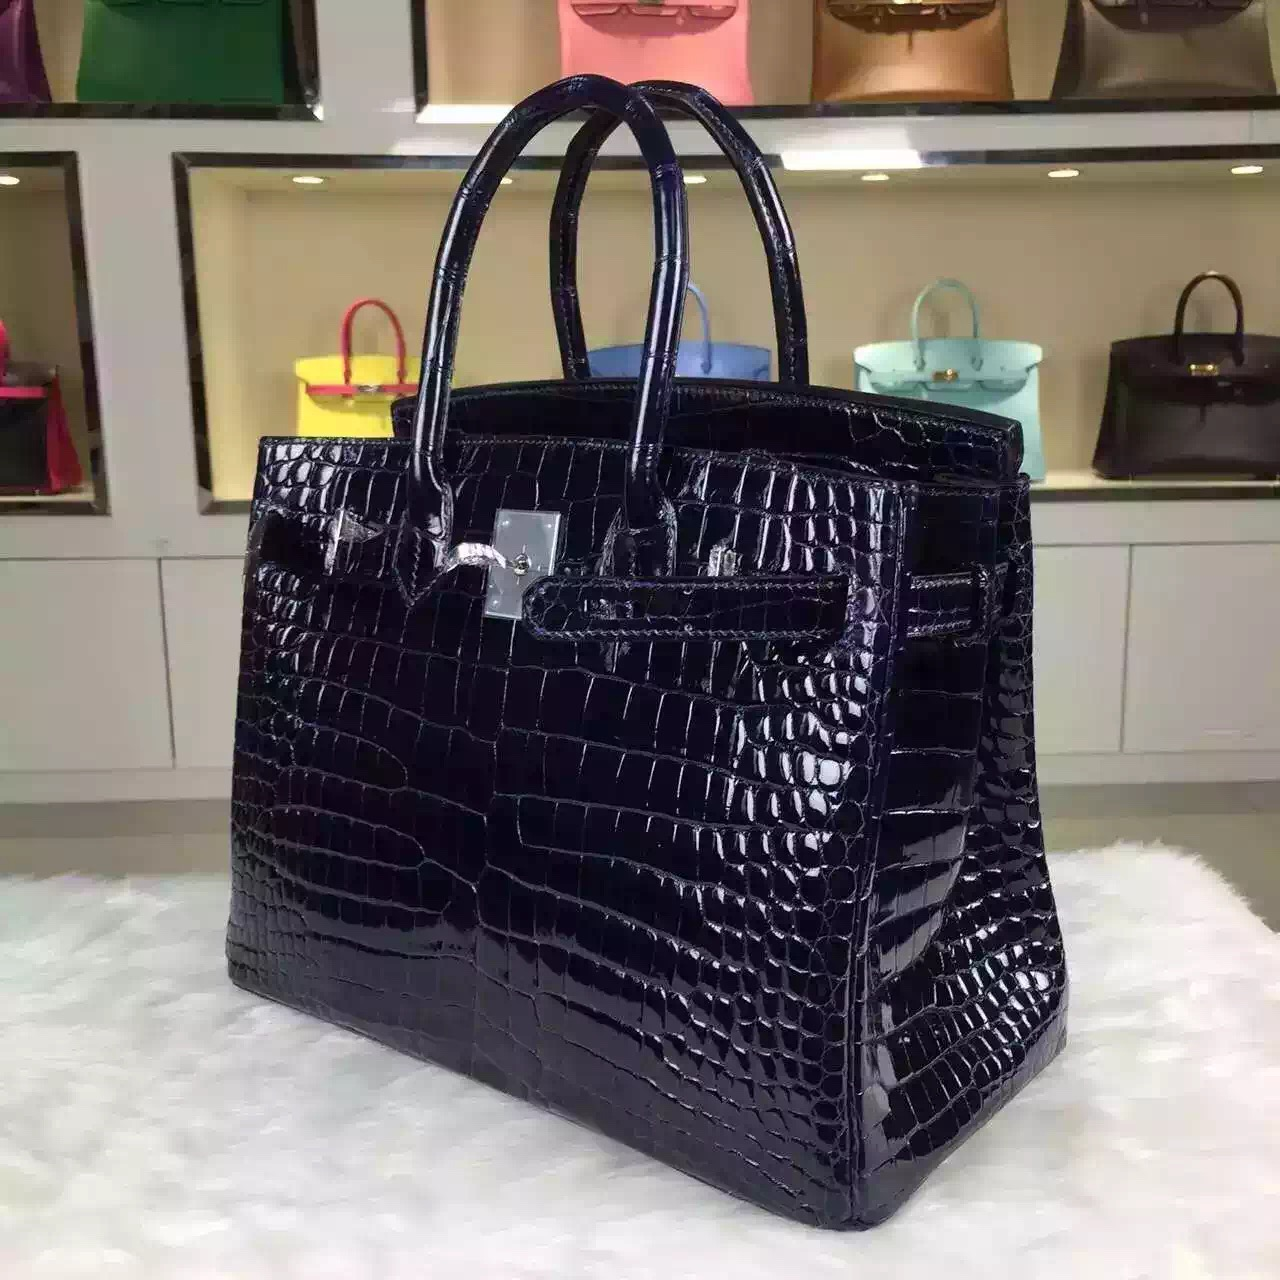 kelly bag replica - Vip Customized Hermes France Original Crocodile Shiny Skin Birkin ...